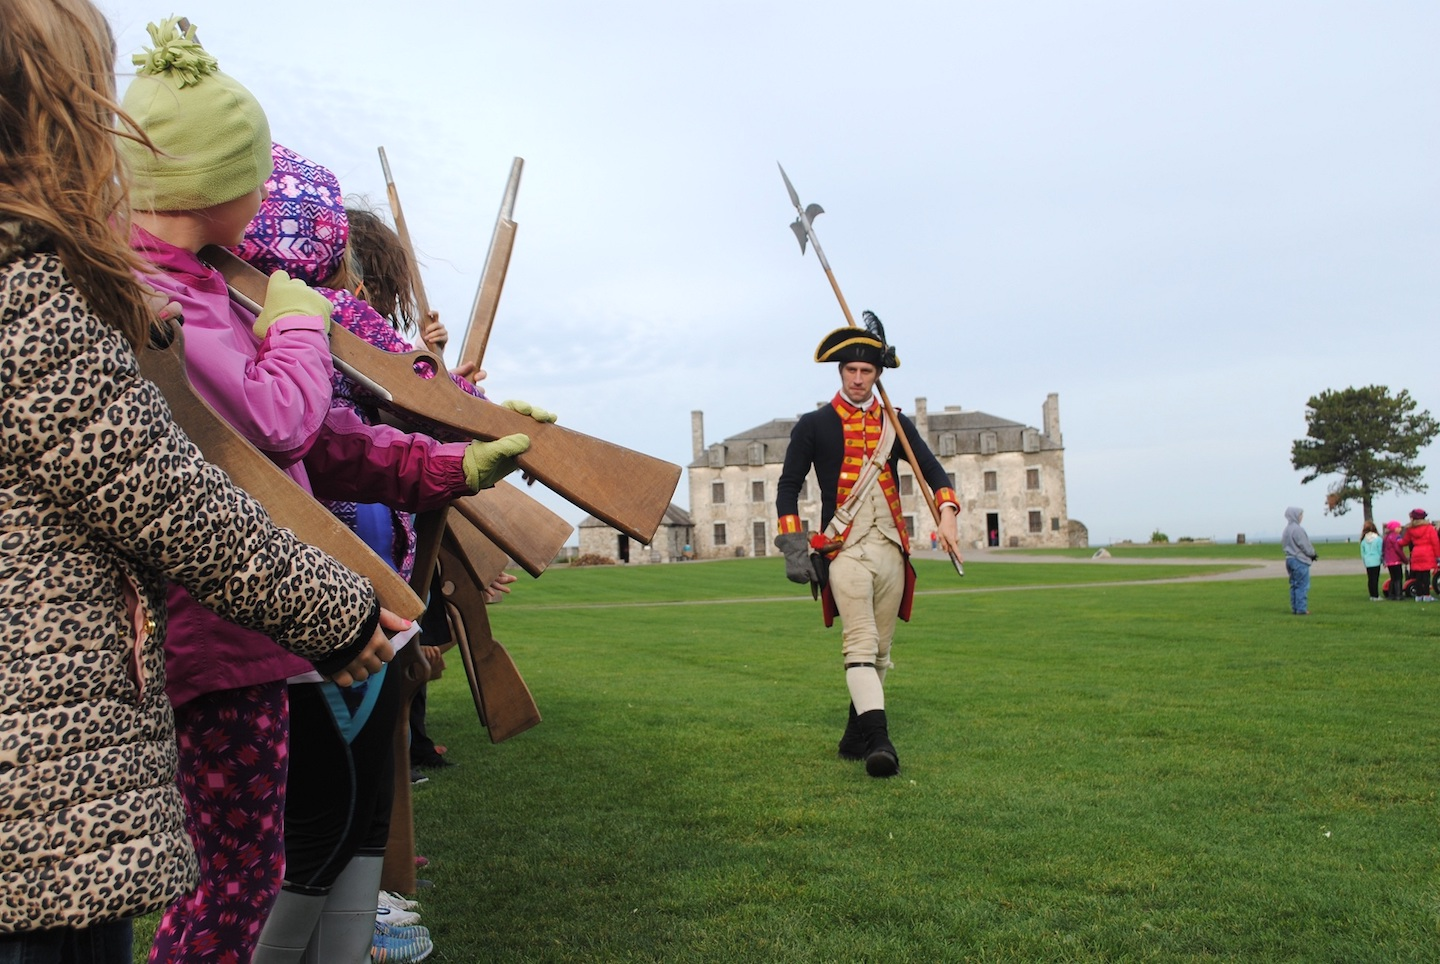 Old Fort Niagara Frontier Days. (Photo by Charlotte Clark)